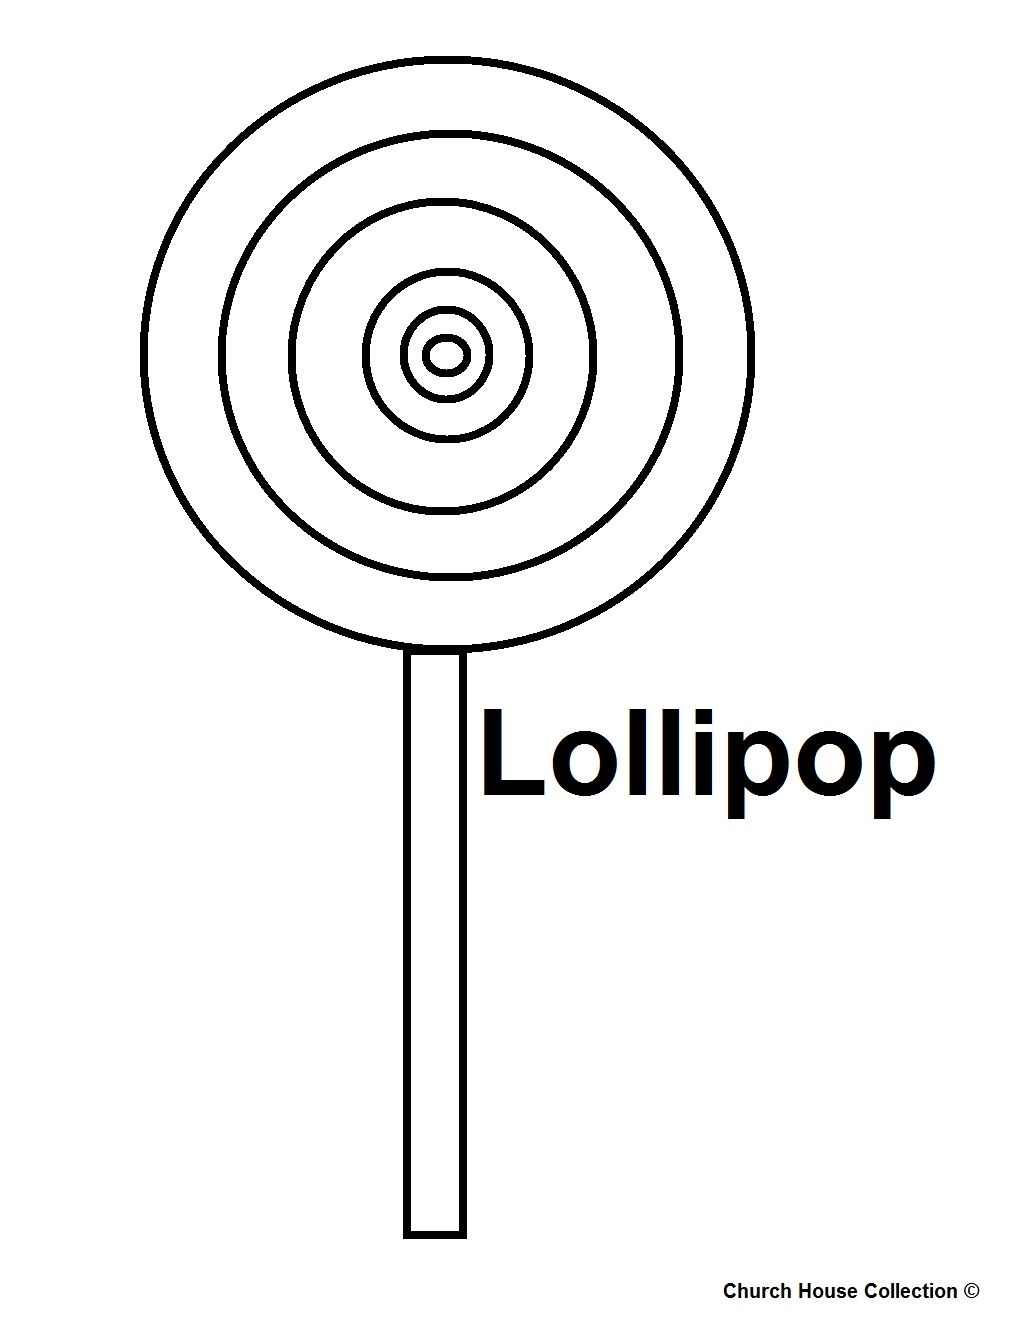 easy coloring pictures lollipop - Google Search | pictures ...